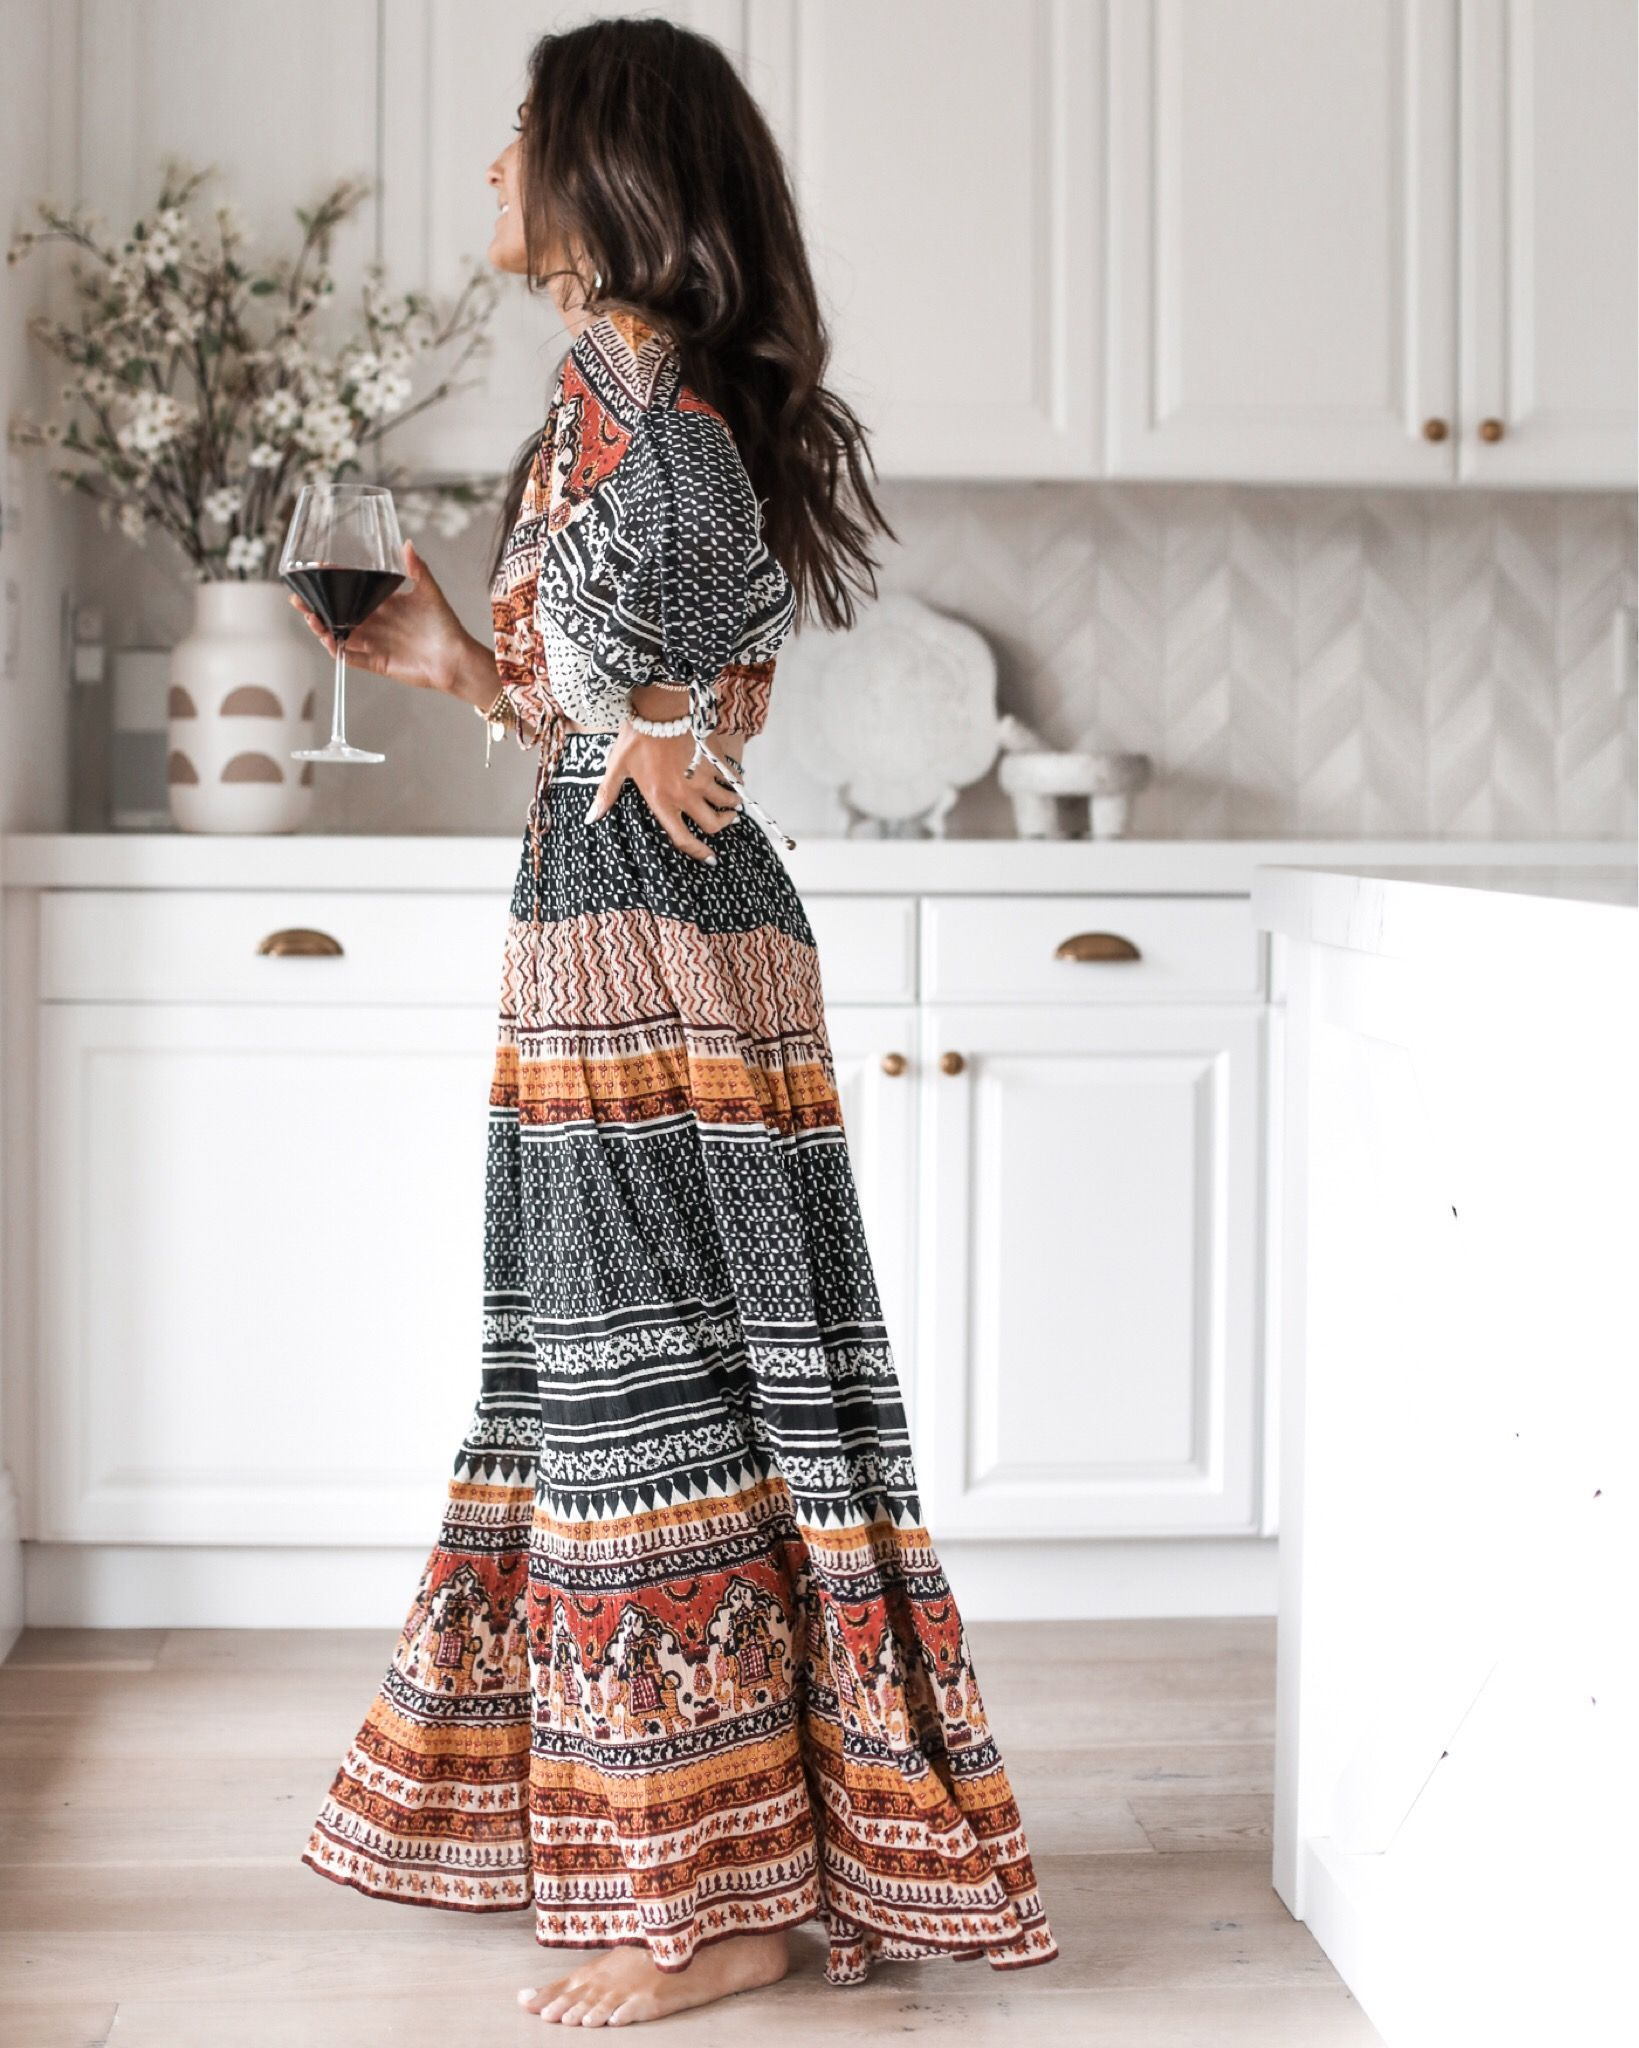 2 Piece Set Style Boho Chic Outfits Spring Boho Summer Dresses Spring Maxi Skirt Outfit [ 2048 x 1639 Pixel ]